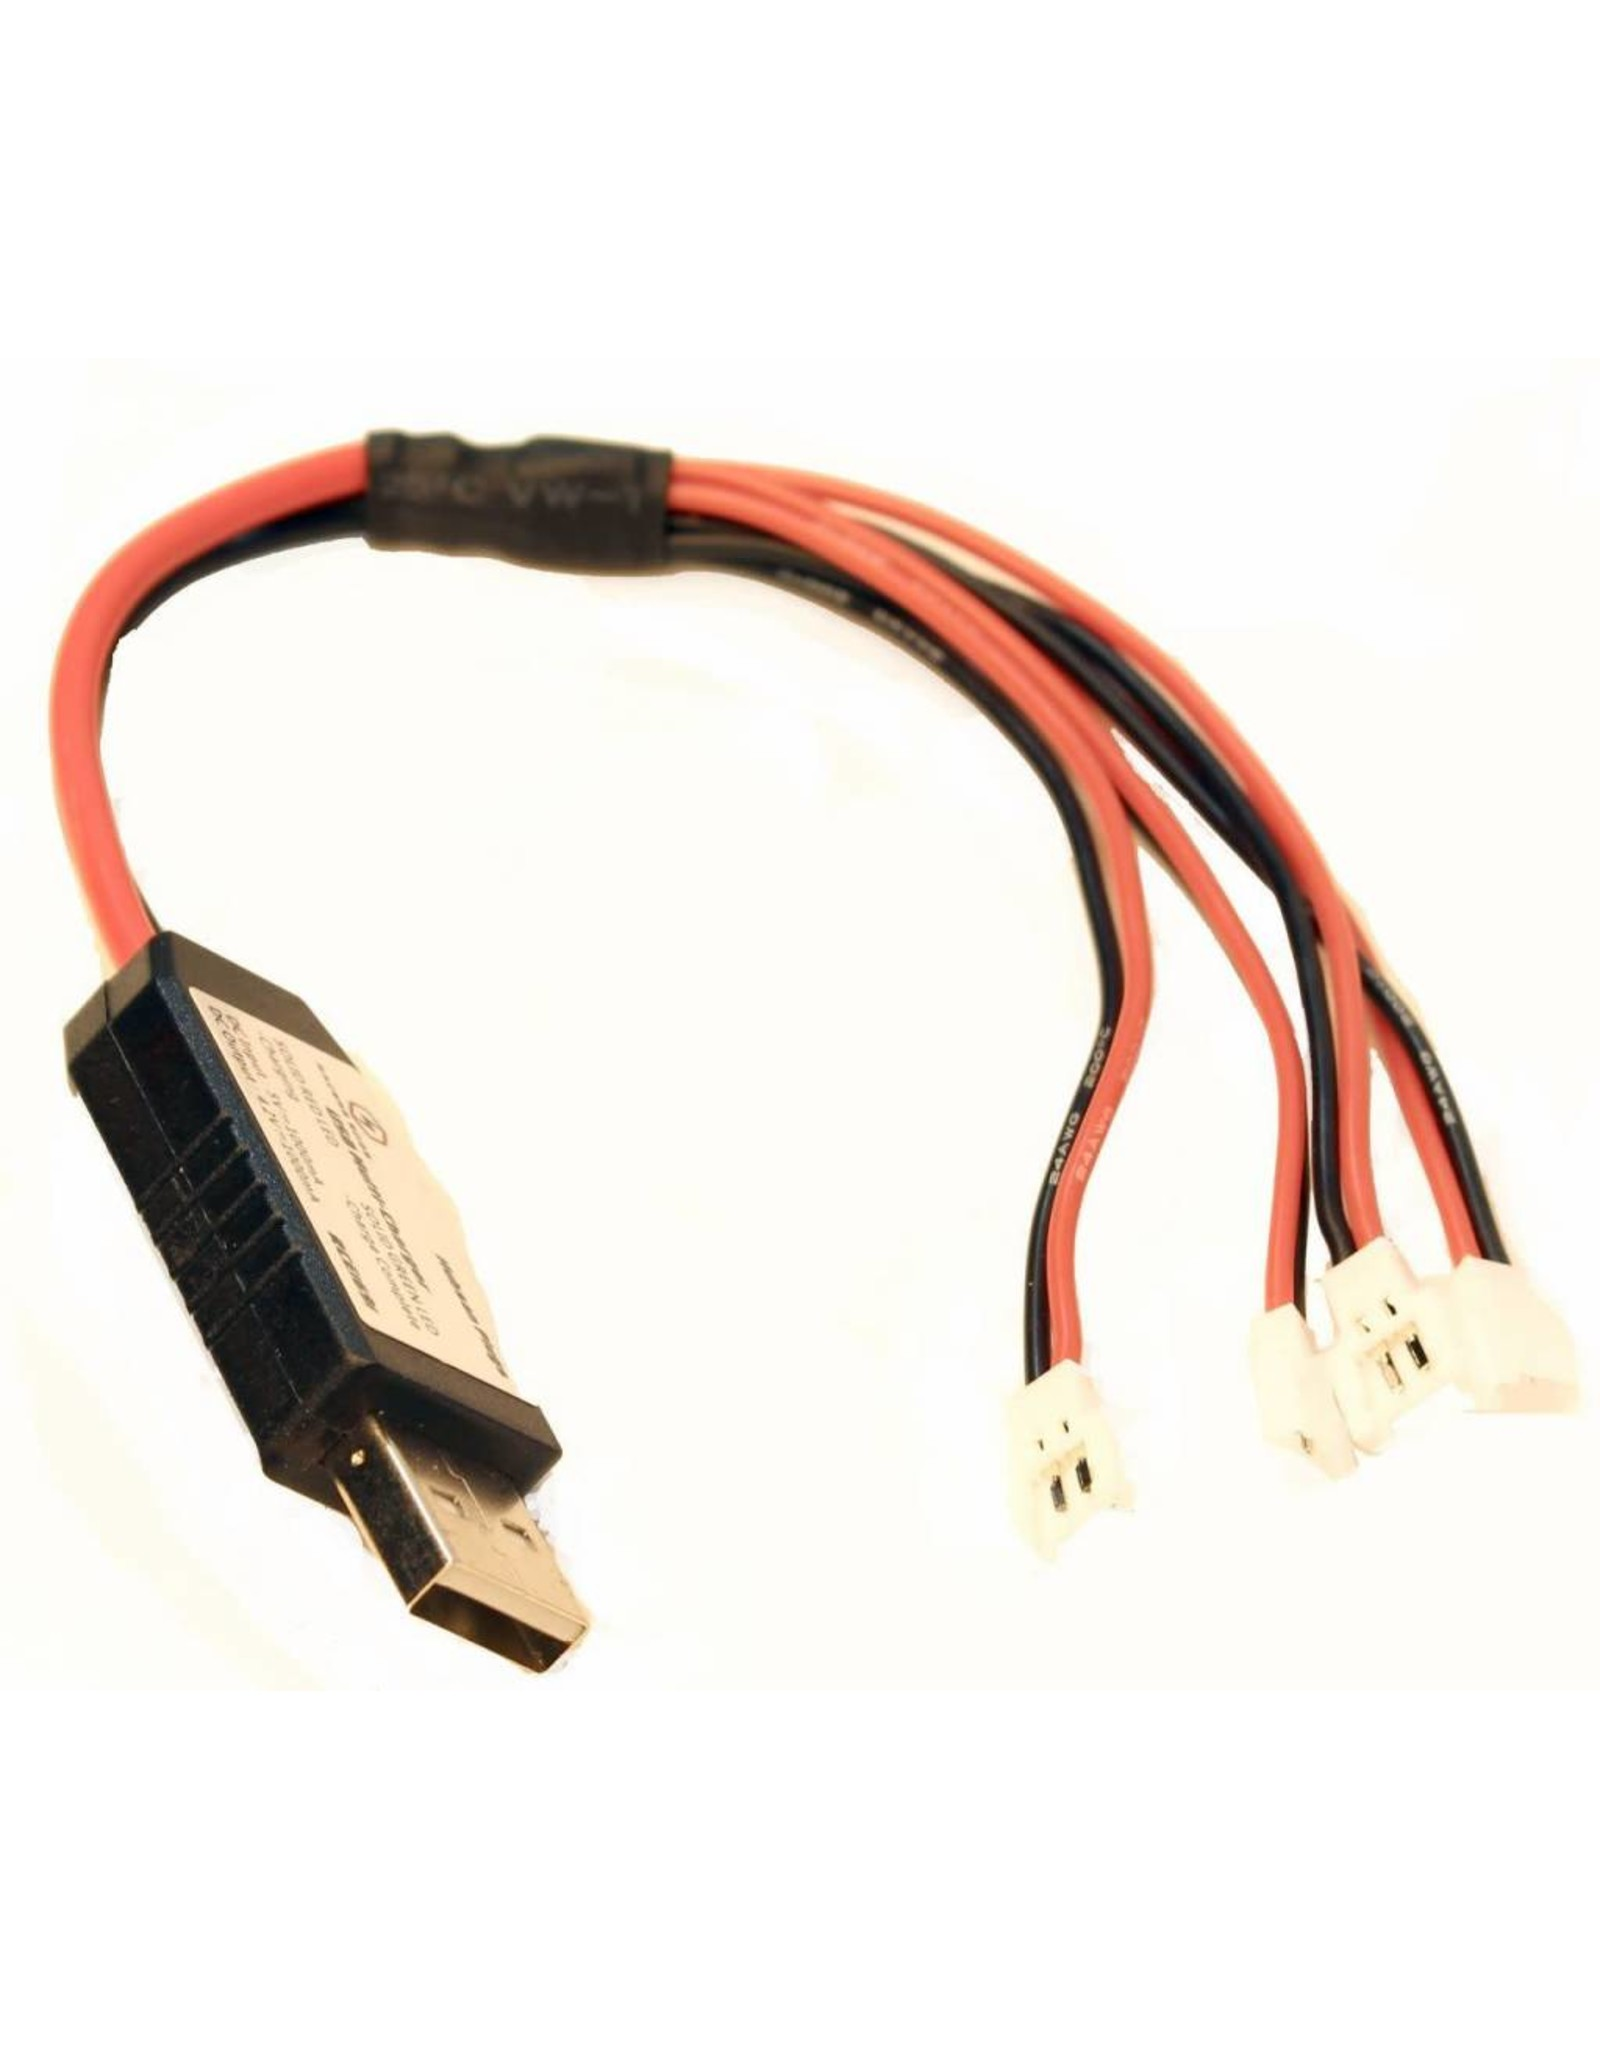 Racers Edge USB Multi-Charger for Charging Up To 4 1S Lipo Batteries at Once, Hubsan Connector (RCE1691)